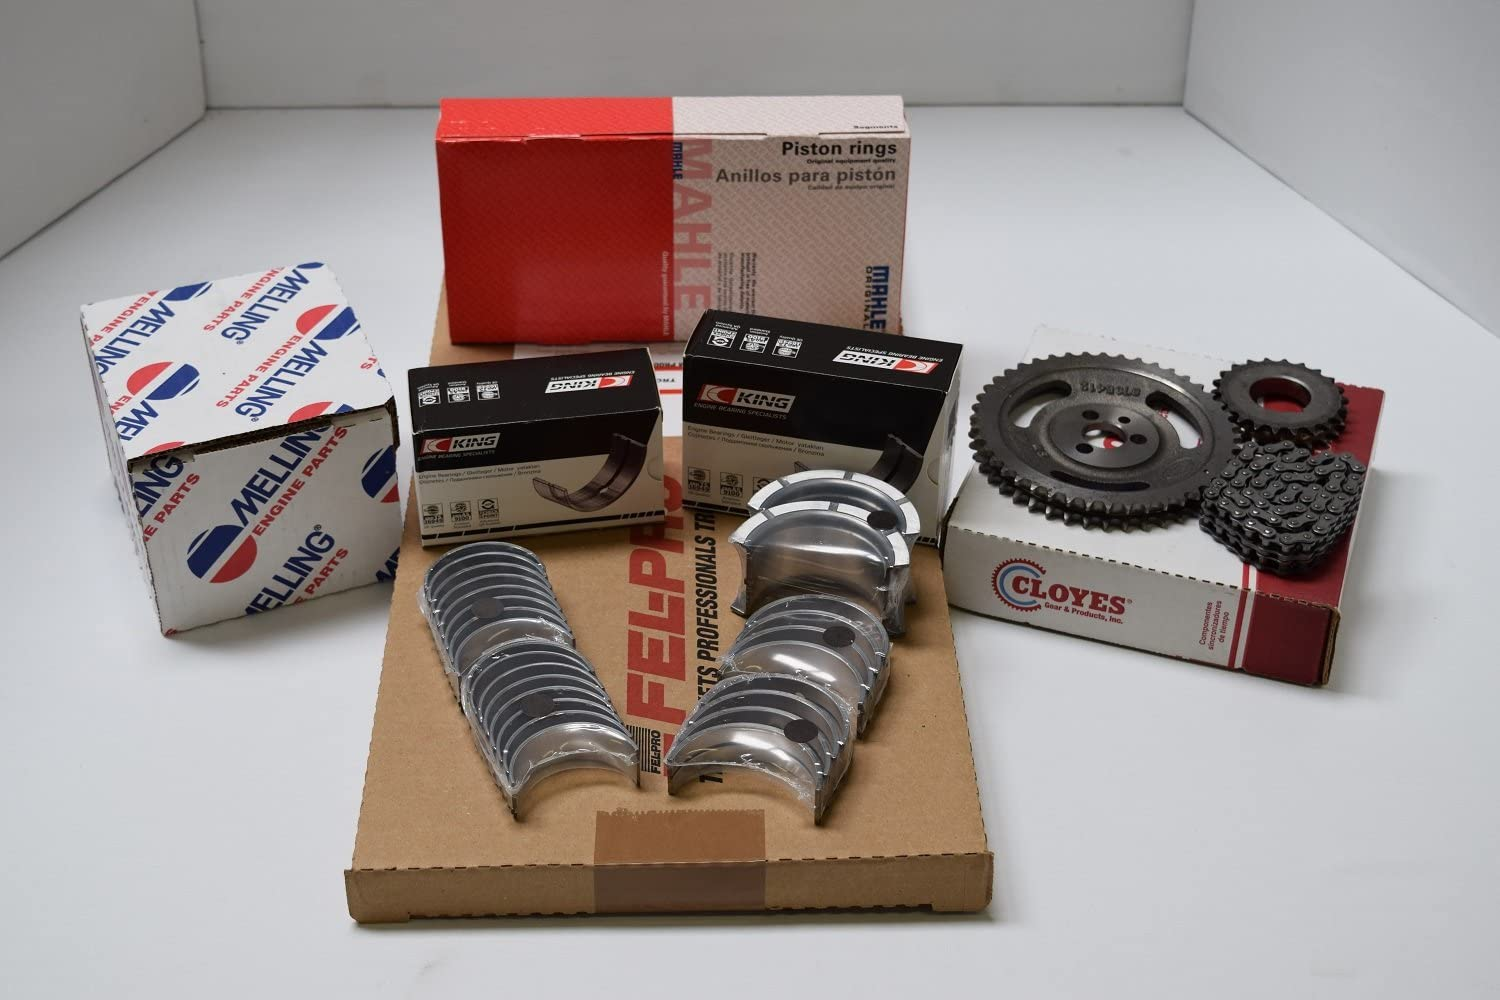 Chevy GMC Hummer 6.5 Max 73% OFF Pistons+Rings+Bearings+Timi Engine 6.5L free Kit